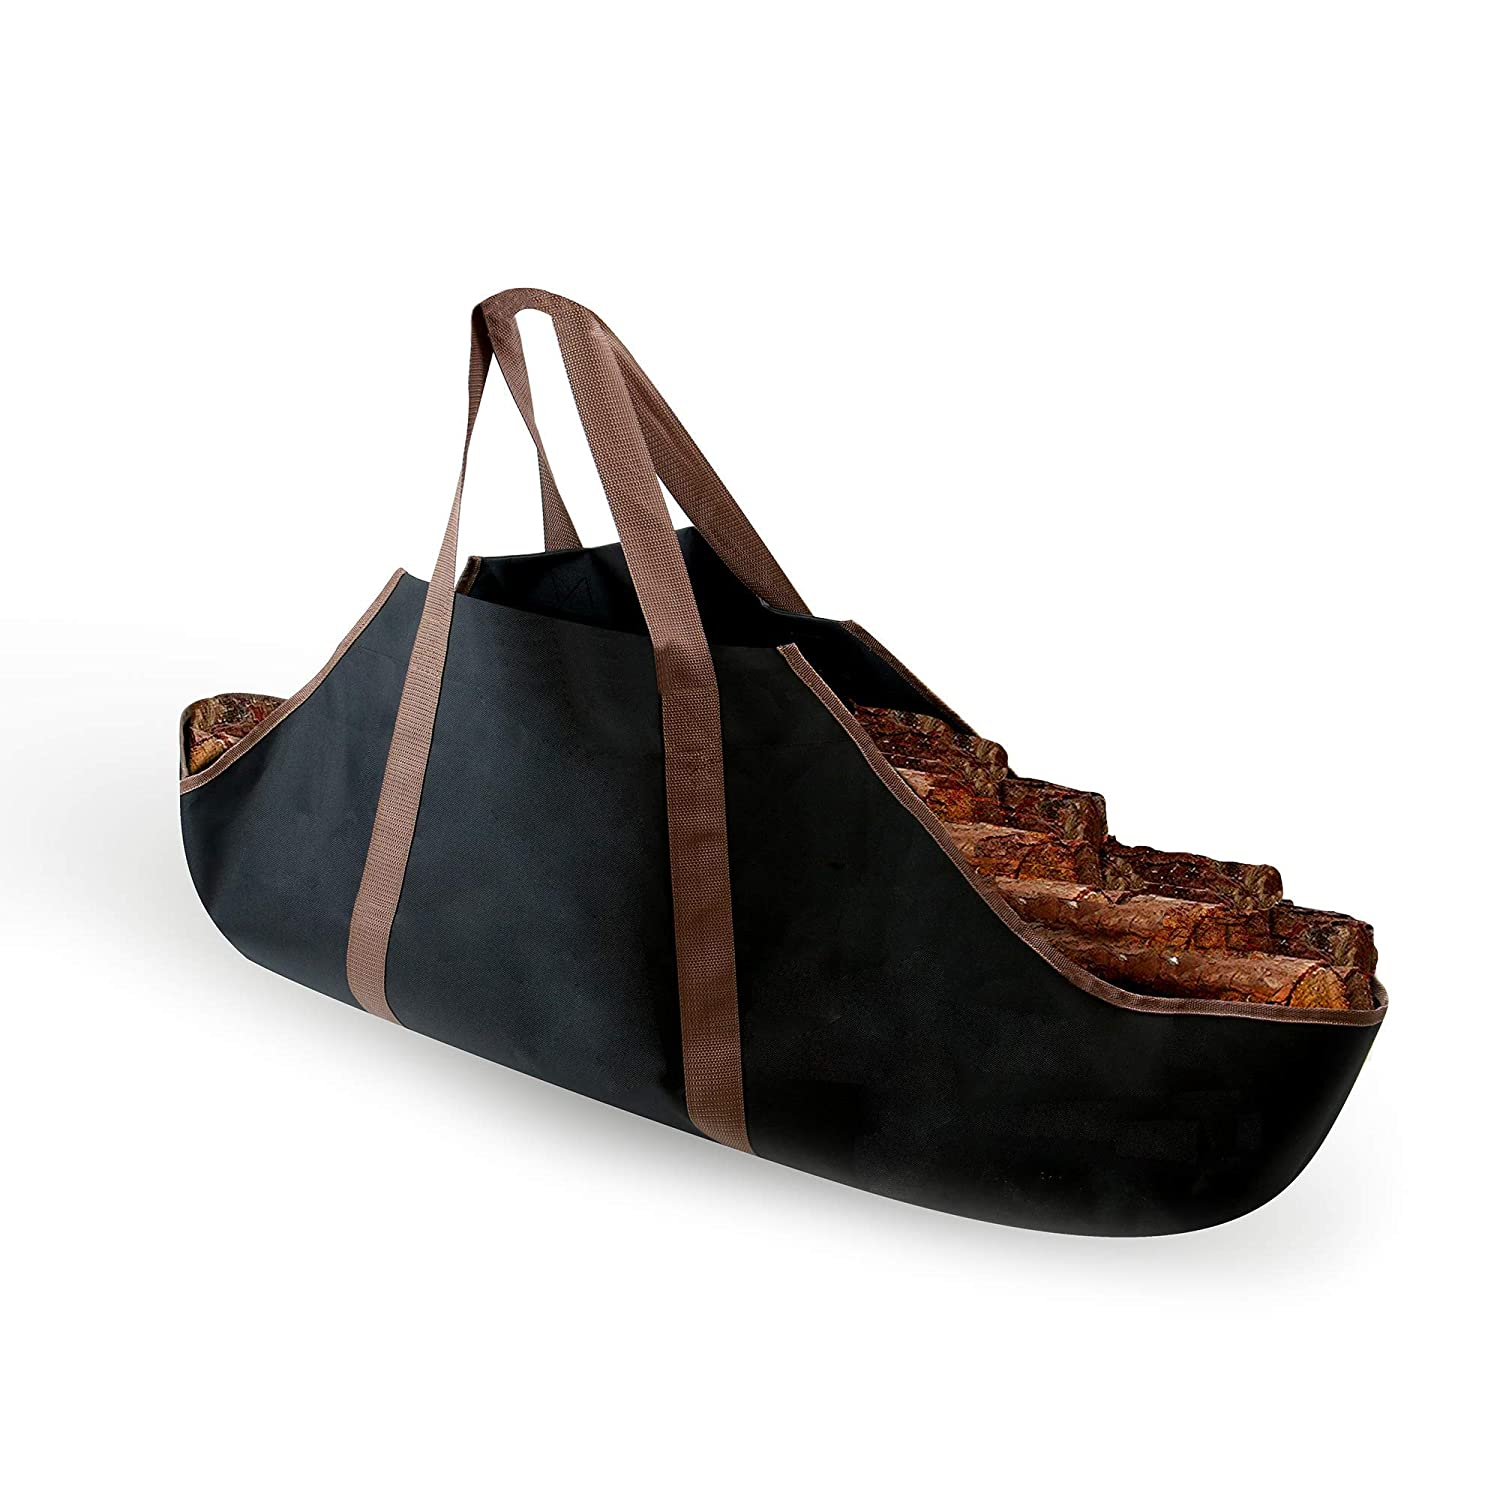 Firewood Tote Highly Durable Water /& Dirt Resistant Heavy Duty Canvas Log /& Firewood Bag M/&W Wood Log Carrier